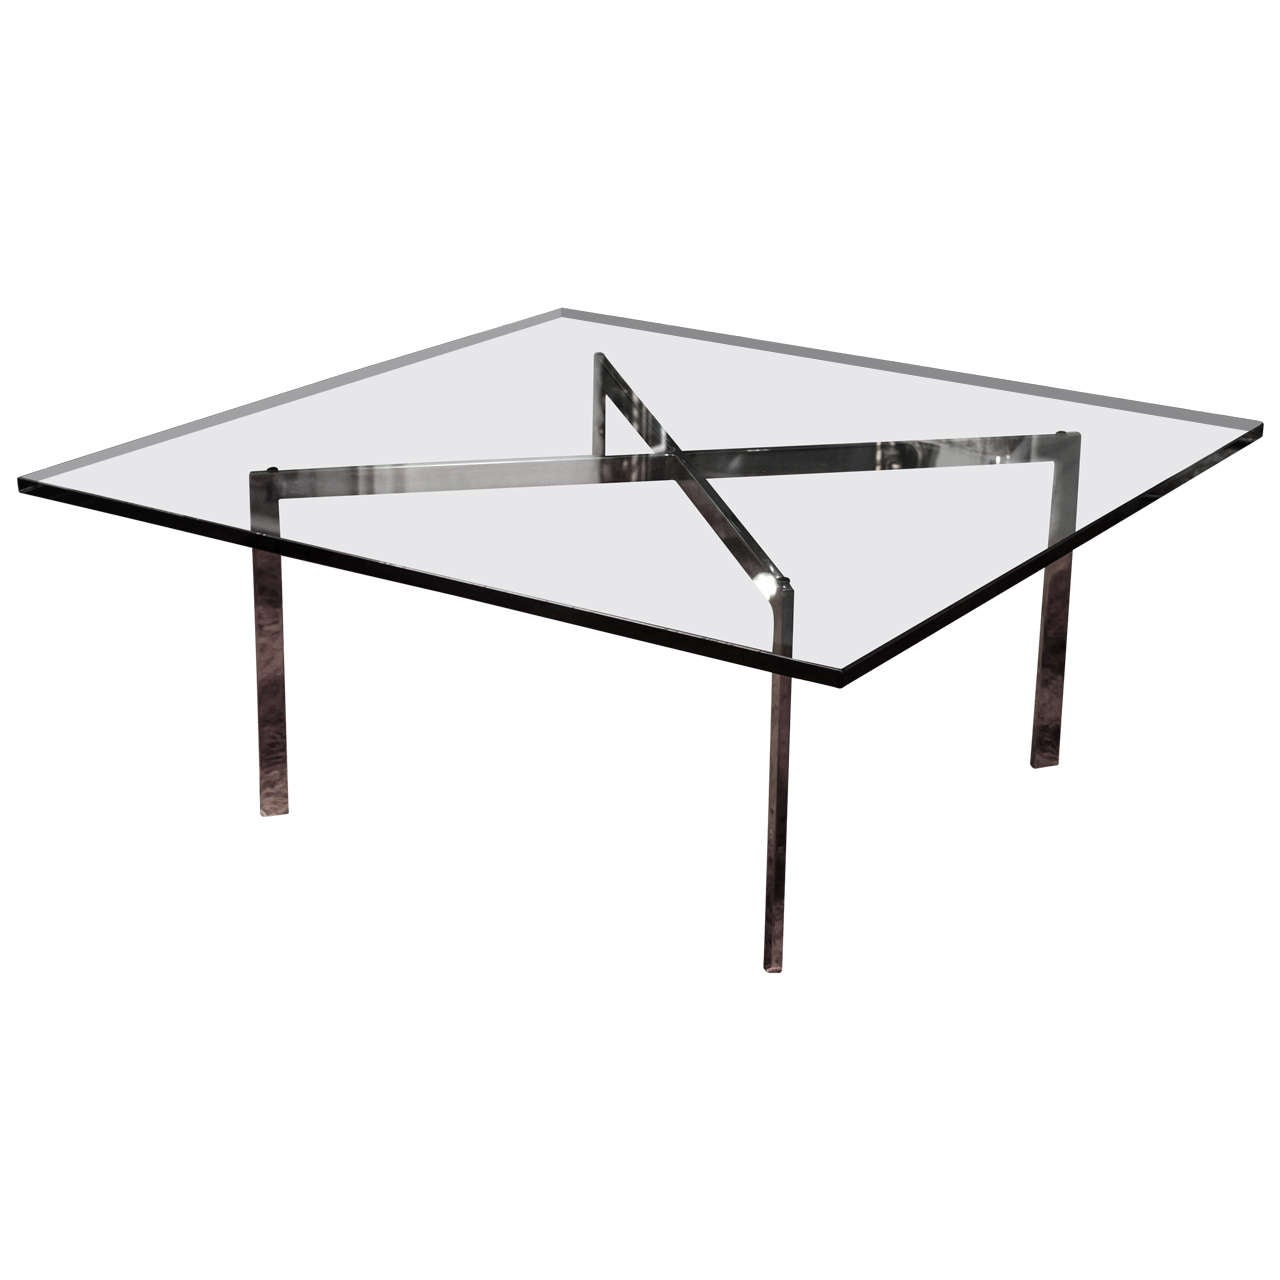 ludwig mies van der rohe barcelona table by knoll at 1stdibs. Black Bedroom Furniture Sets. Home Design Ideas